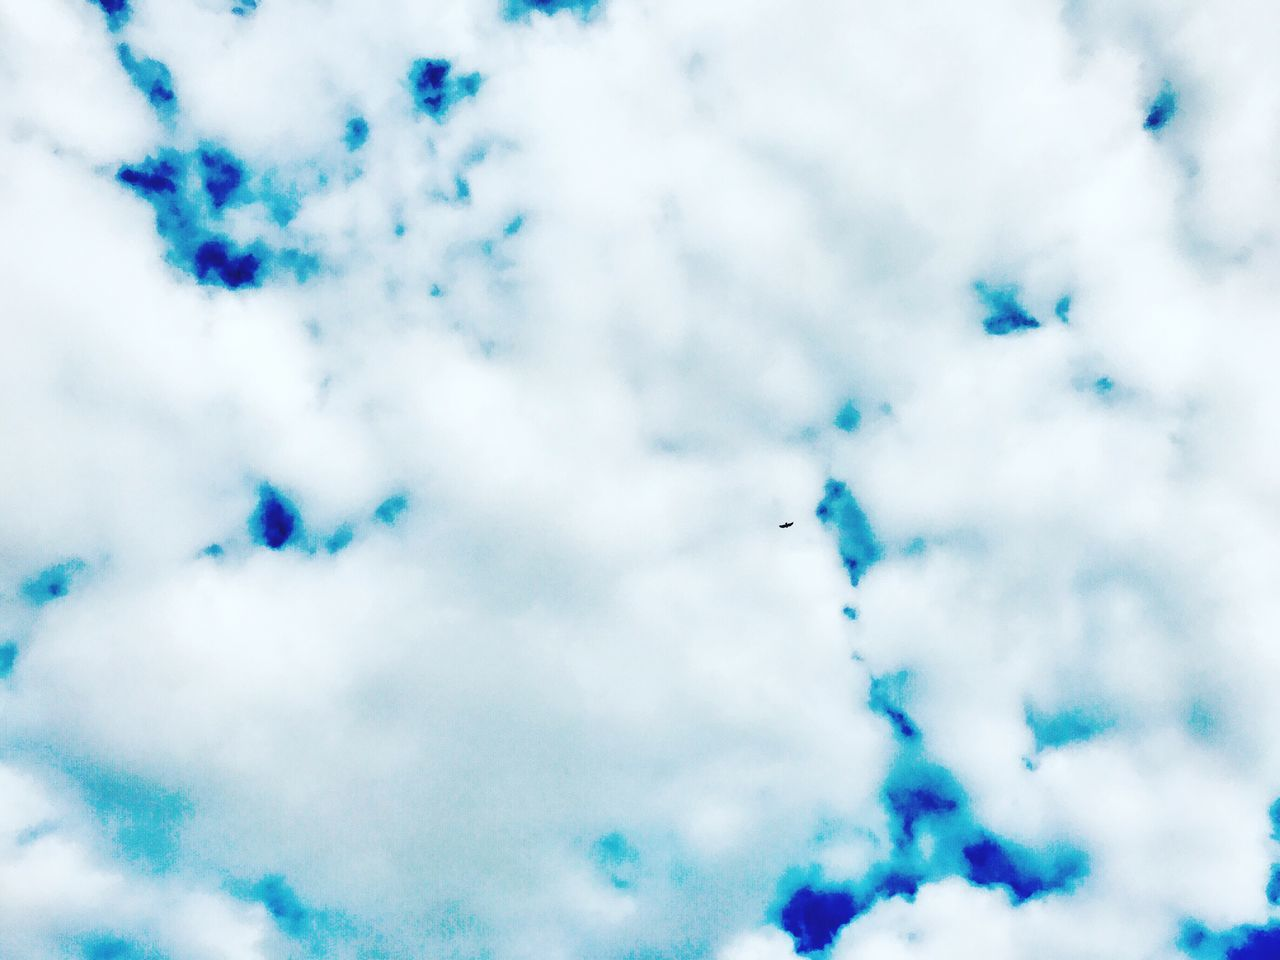 cloud - sky, sky, low angle view, nature, beauty in nature, cloudscape, sky only, day, blue, outdoors, backgrounds, no people, scenics, bird